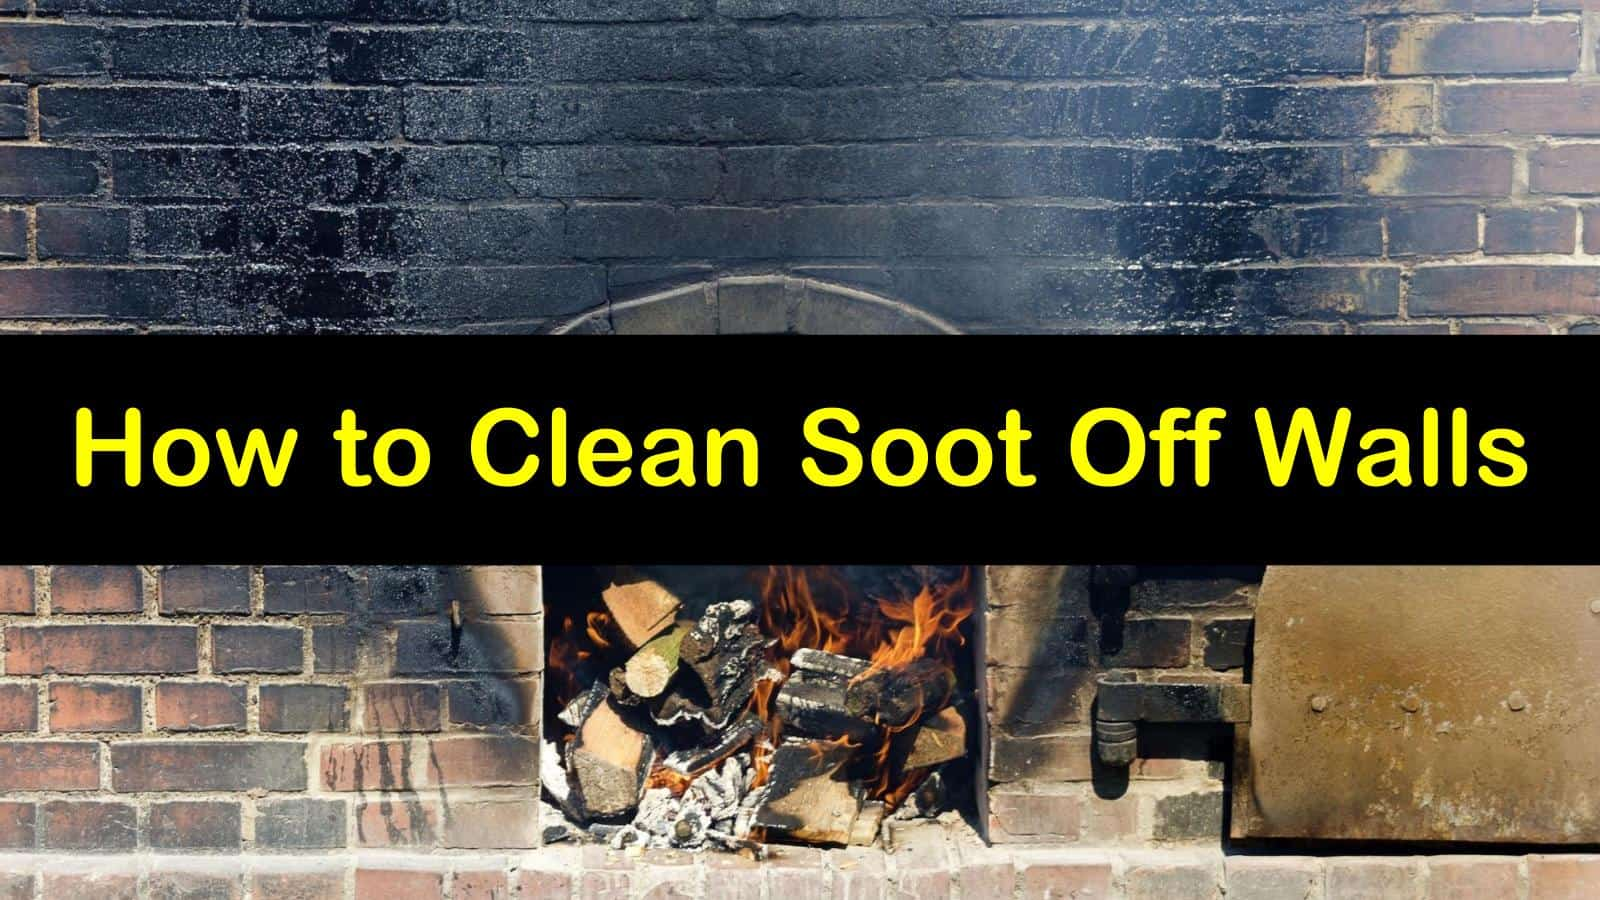 Clever Ways To Clean Soot Off Walls